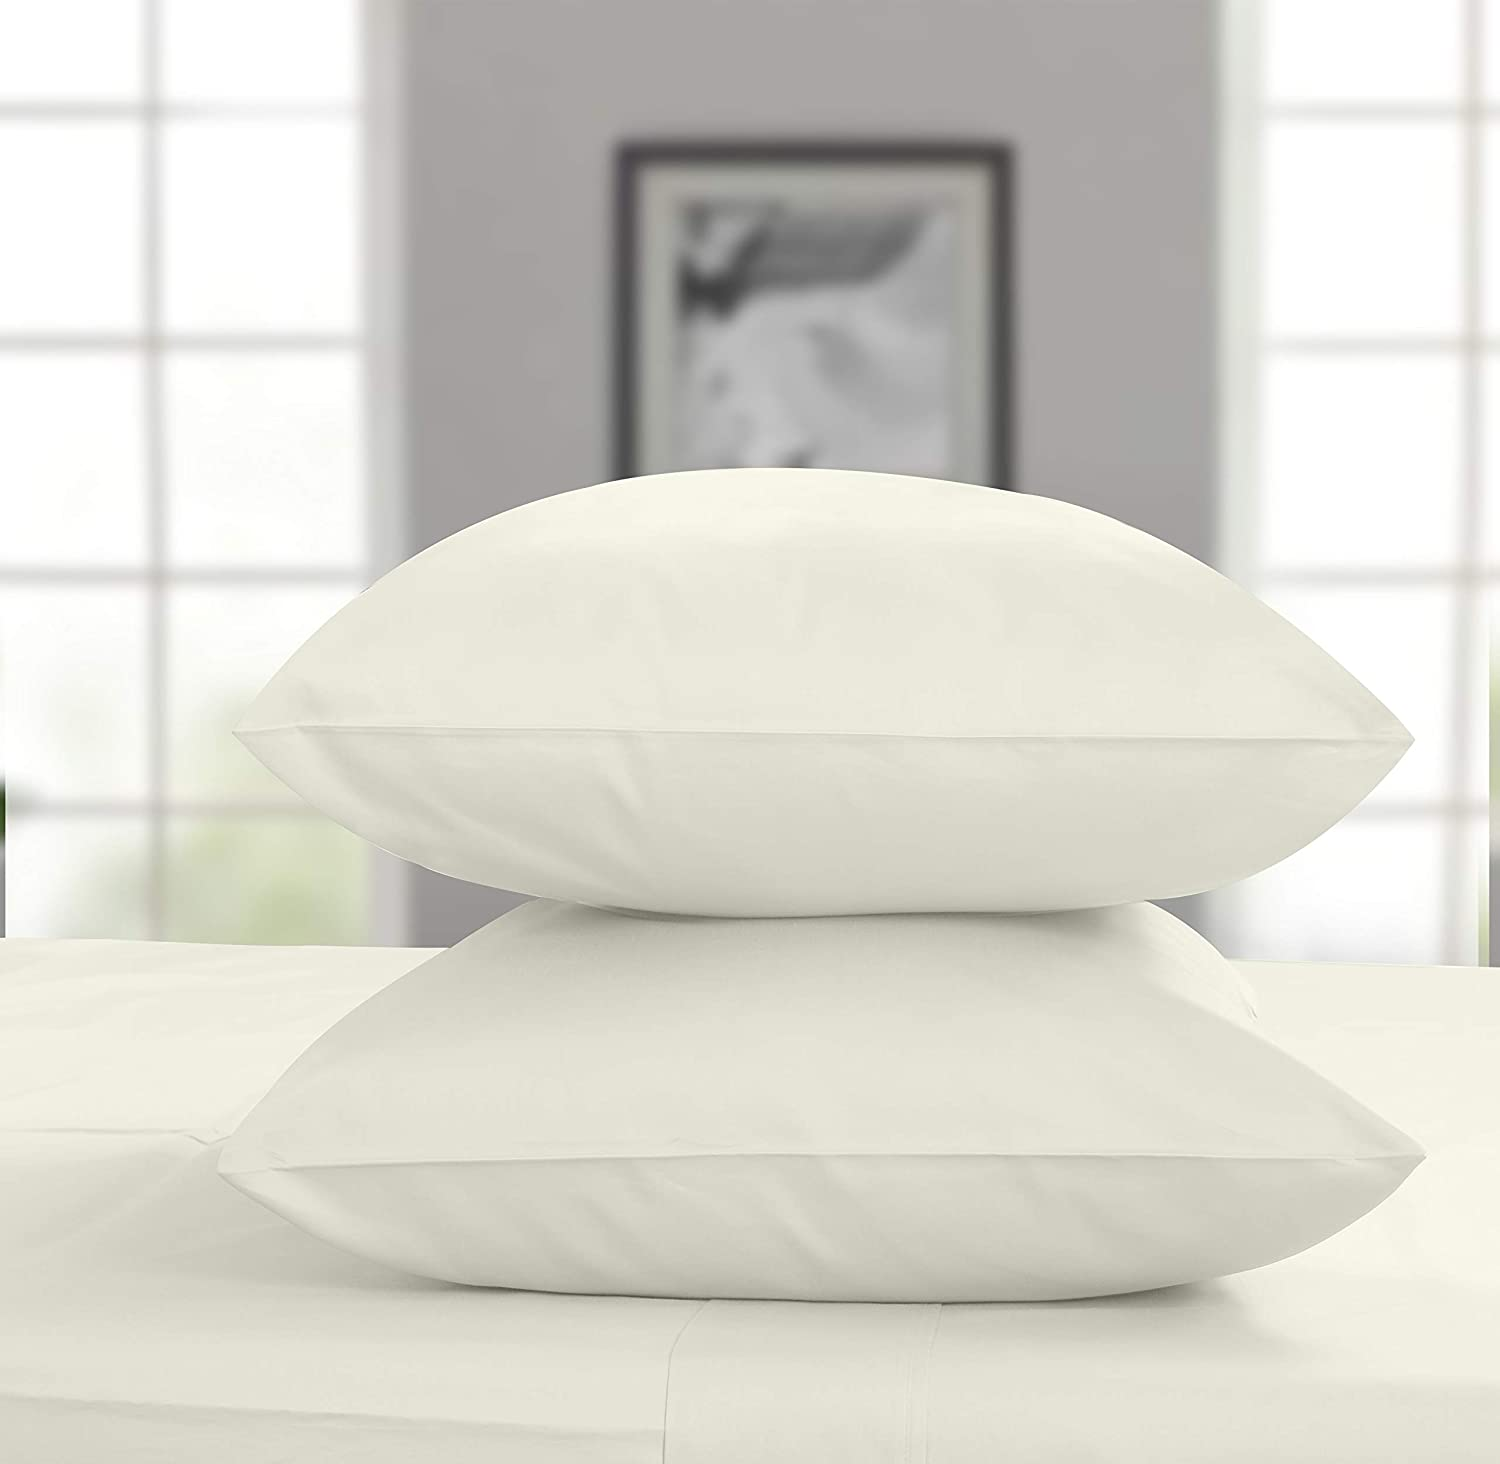 Threadmill Home Linen 600 Thread Count 100% Cotton Pillow Cases Solid Sateen Set of 2 Cotton Pillowcases Standard Size, Luxury Soft and Smooth, Ivory